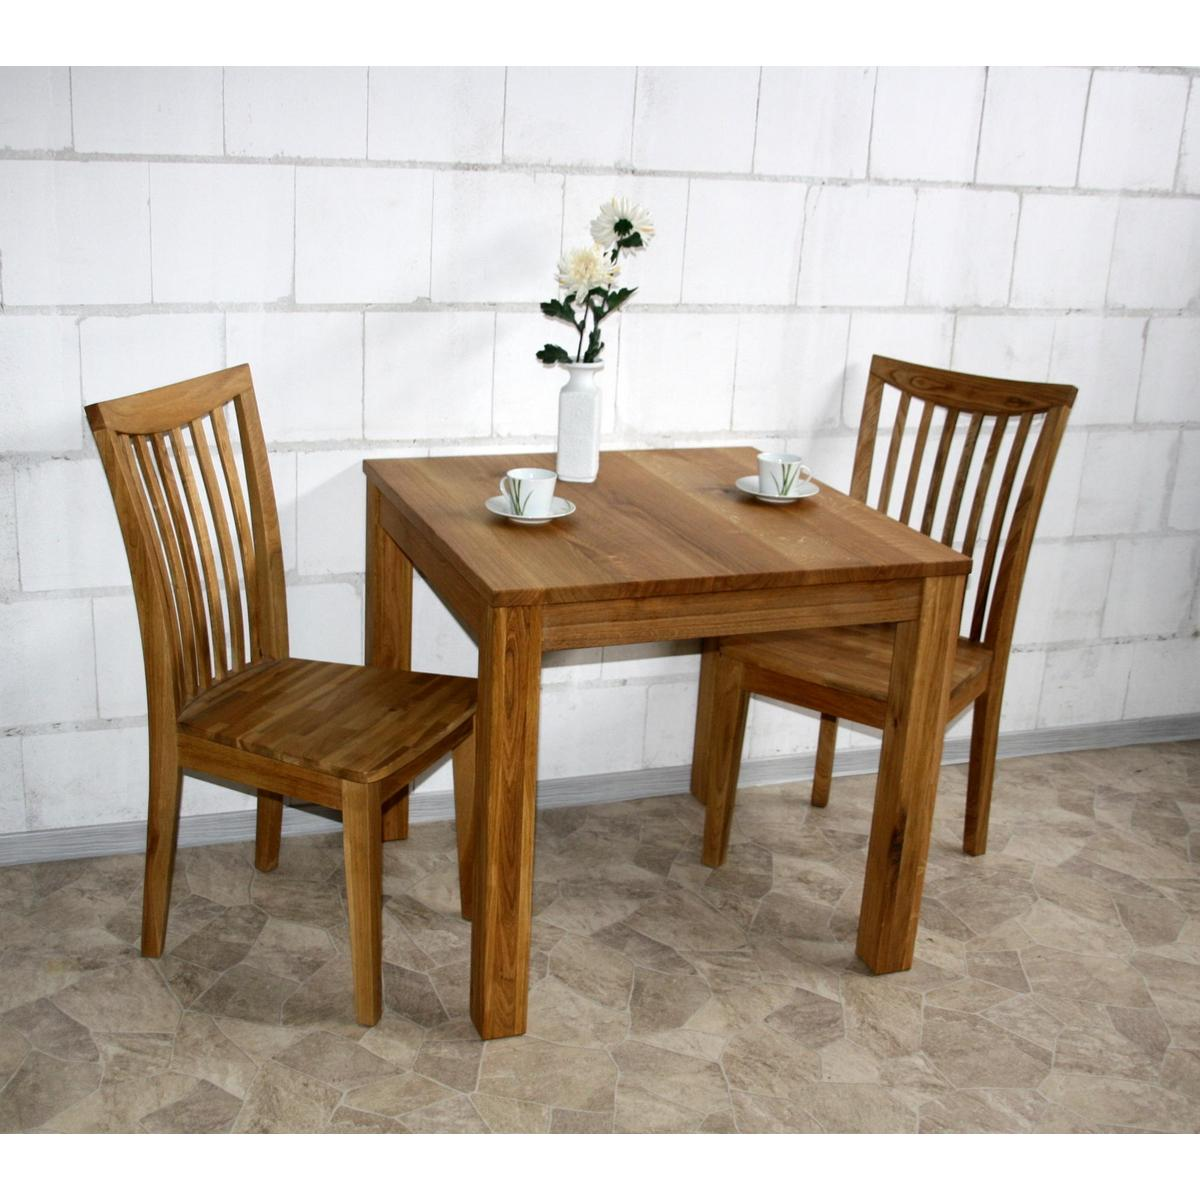 great affordable massivholz esstisch tisch x wildeiche massiv gelt eiche kchentisch diez with tisch x ausziehbar holz with esstisch klein ausziehbar with